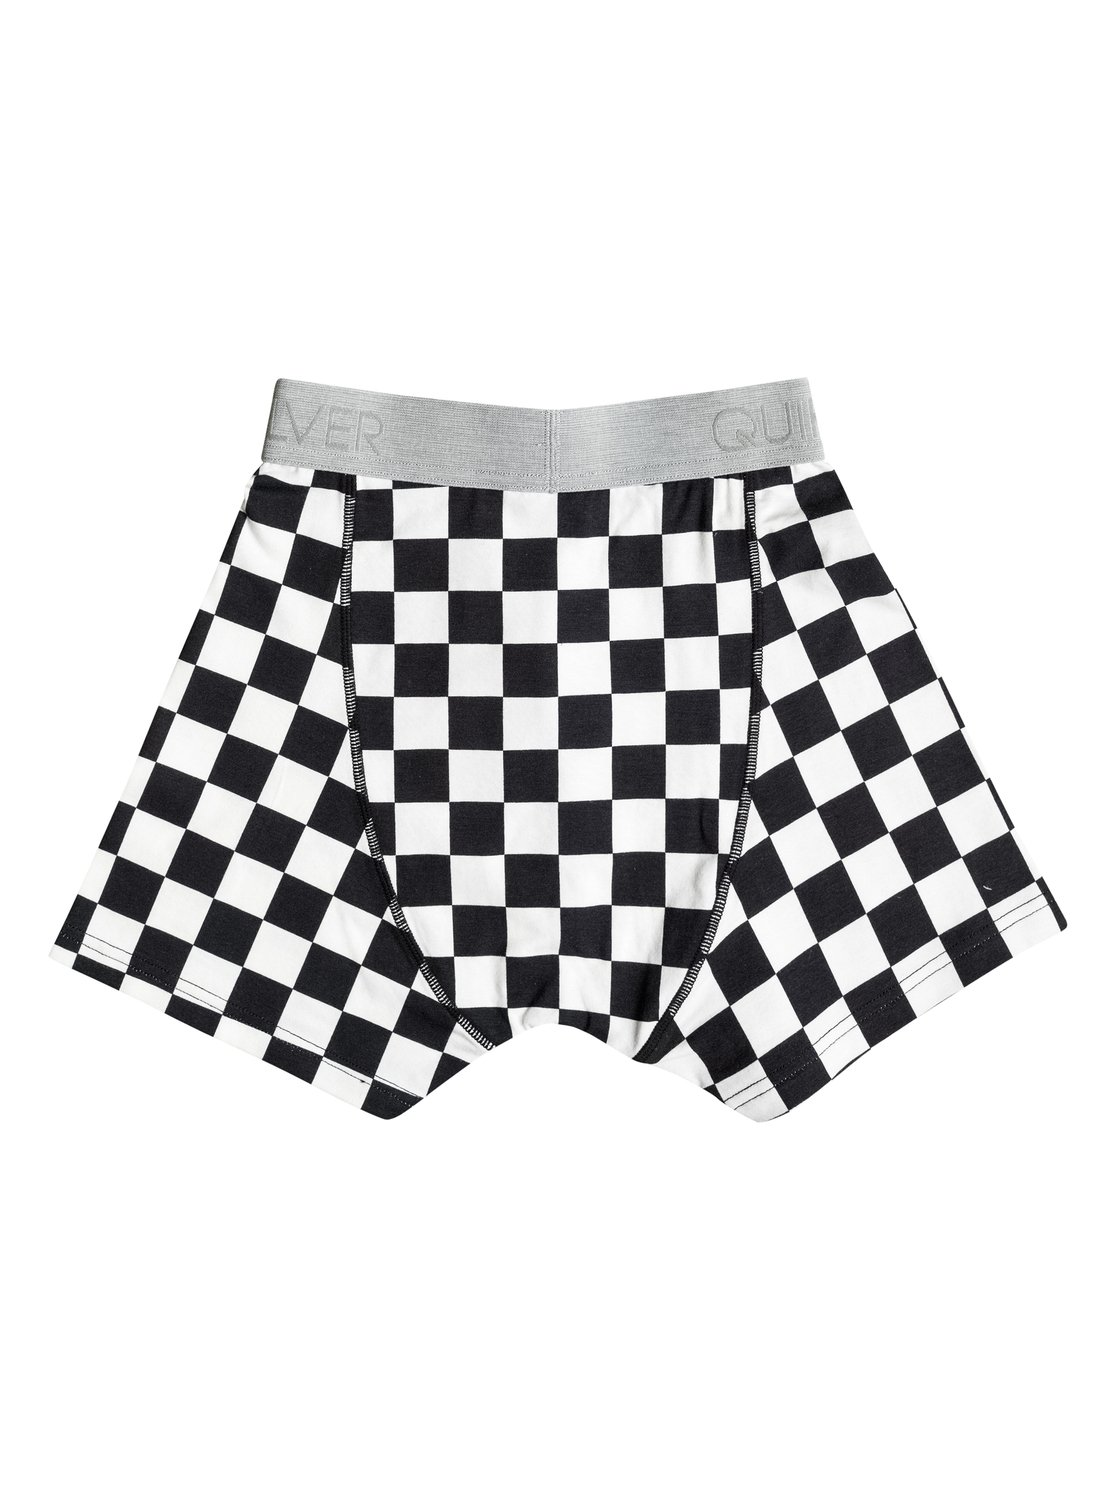 QUIKSILVER IMPOSTER B BIG KIDS GRAY BOXER//SHORTS//BRIEF//UNDERWEAR size Small